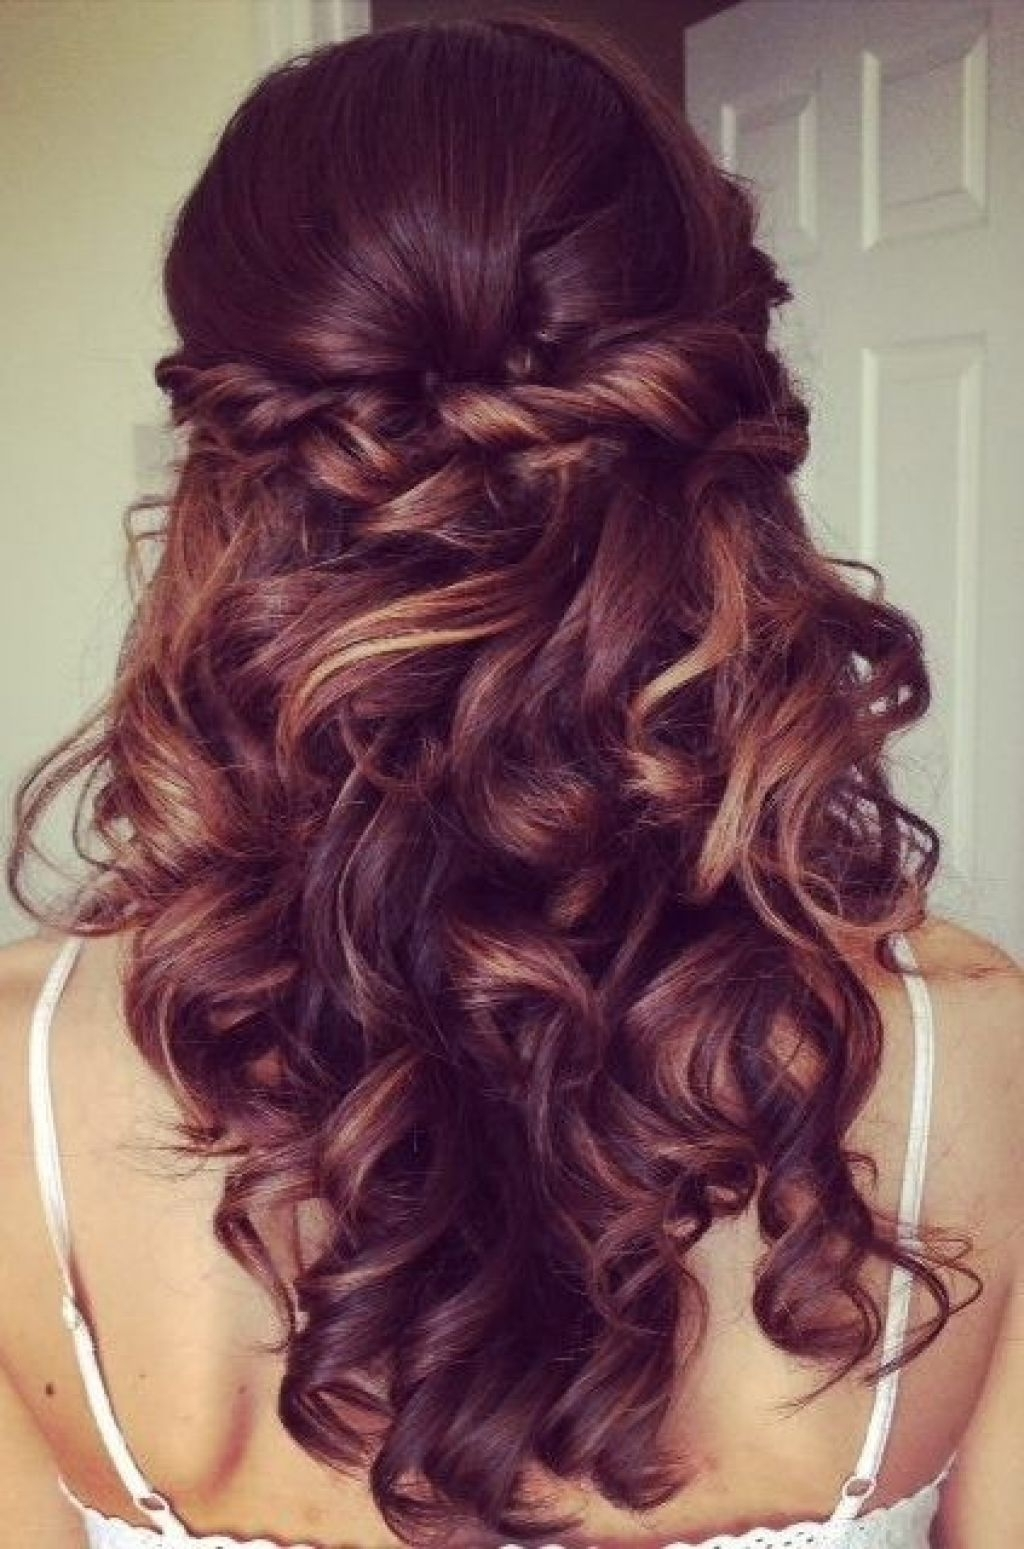 Curly Hairstyles Simple Hair Formal Cute Down Homecoming For Long Throughout Wavy Hair Updo Hairstyles (View 15 of 15)